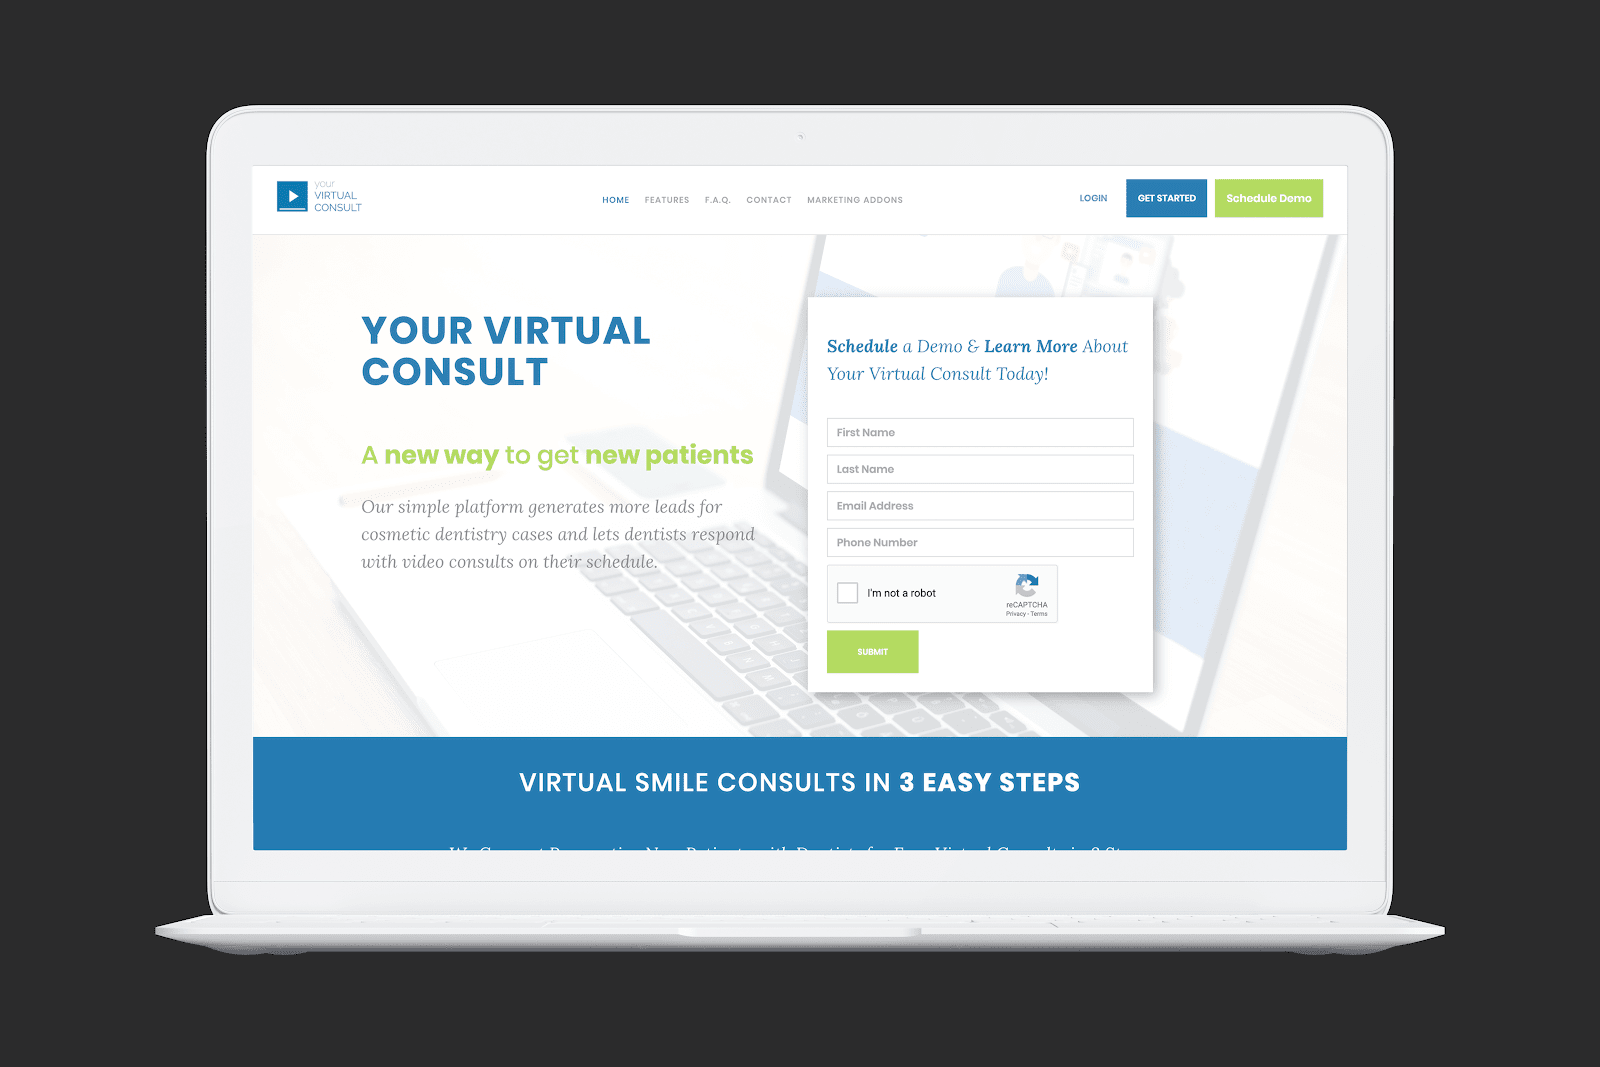 Your Virtual Consult Homepage Screengrab